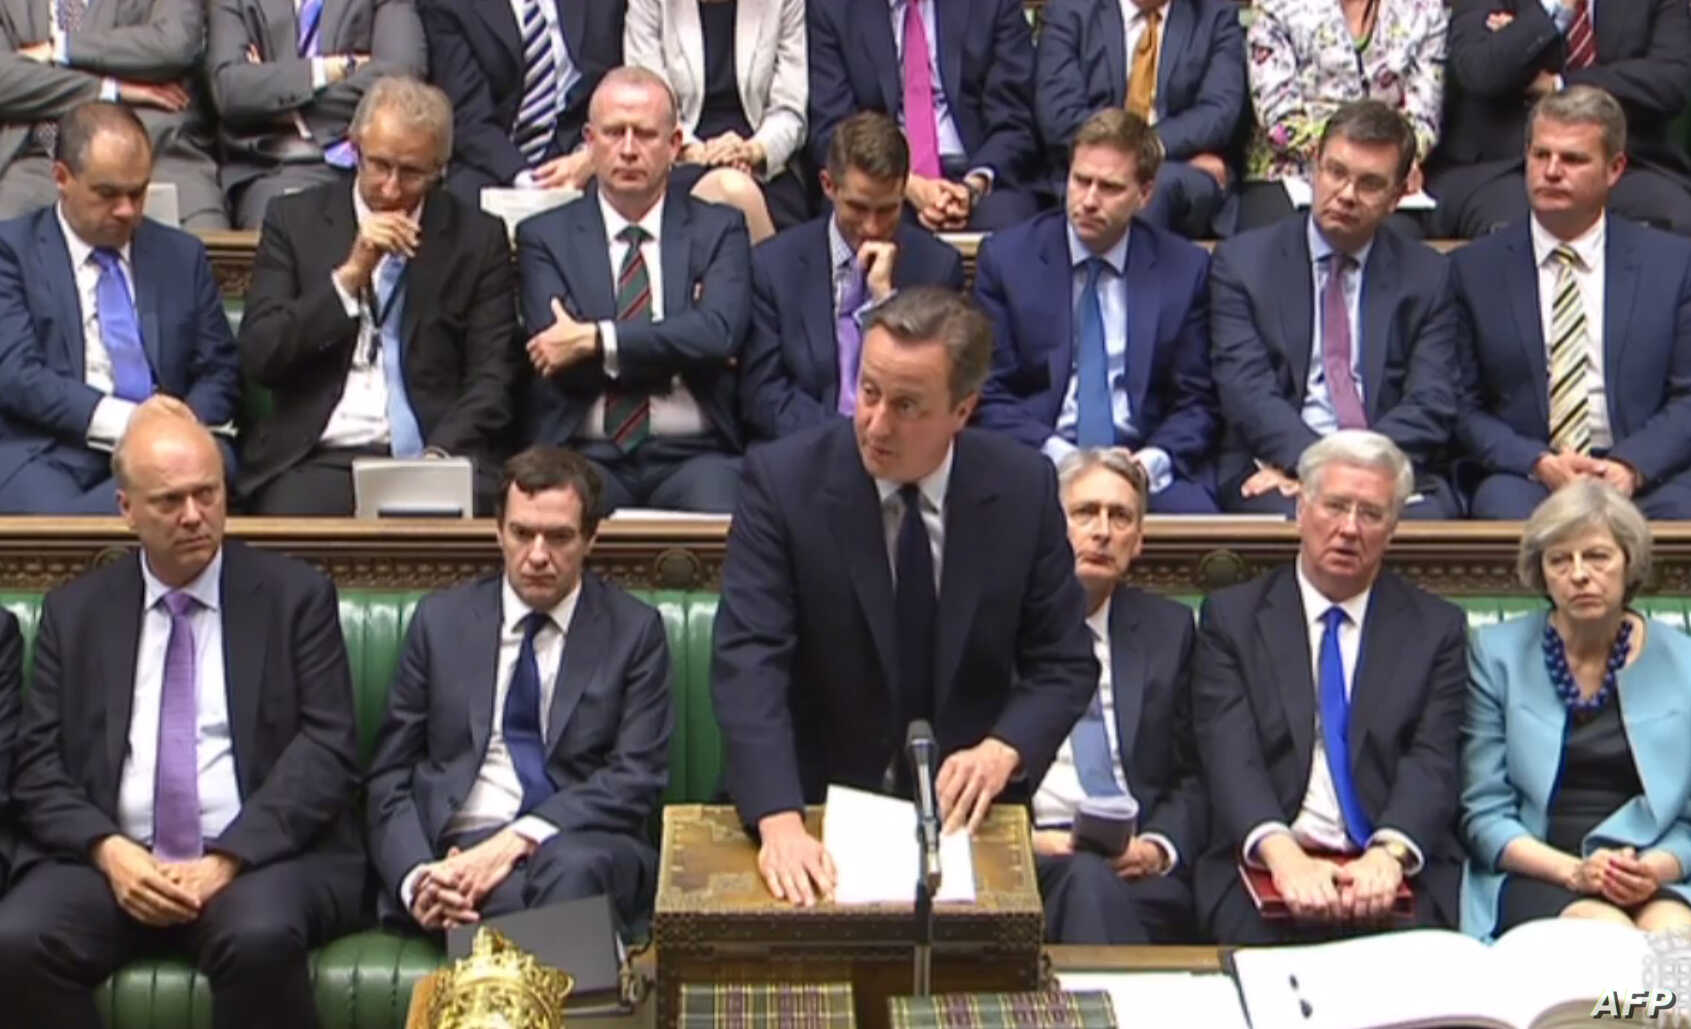 This video grab taken from footage broadcast by the UK Parliamentary Recording Unit (PRU), shows British Prime Minister David Cameron giving a statement in Parliament in London on June 27, 2016 following the EU referendum.